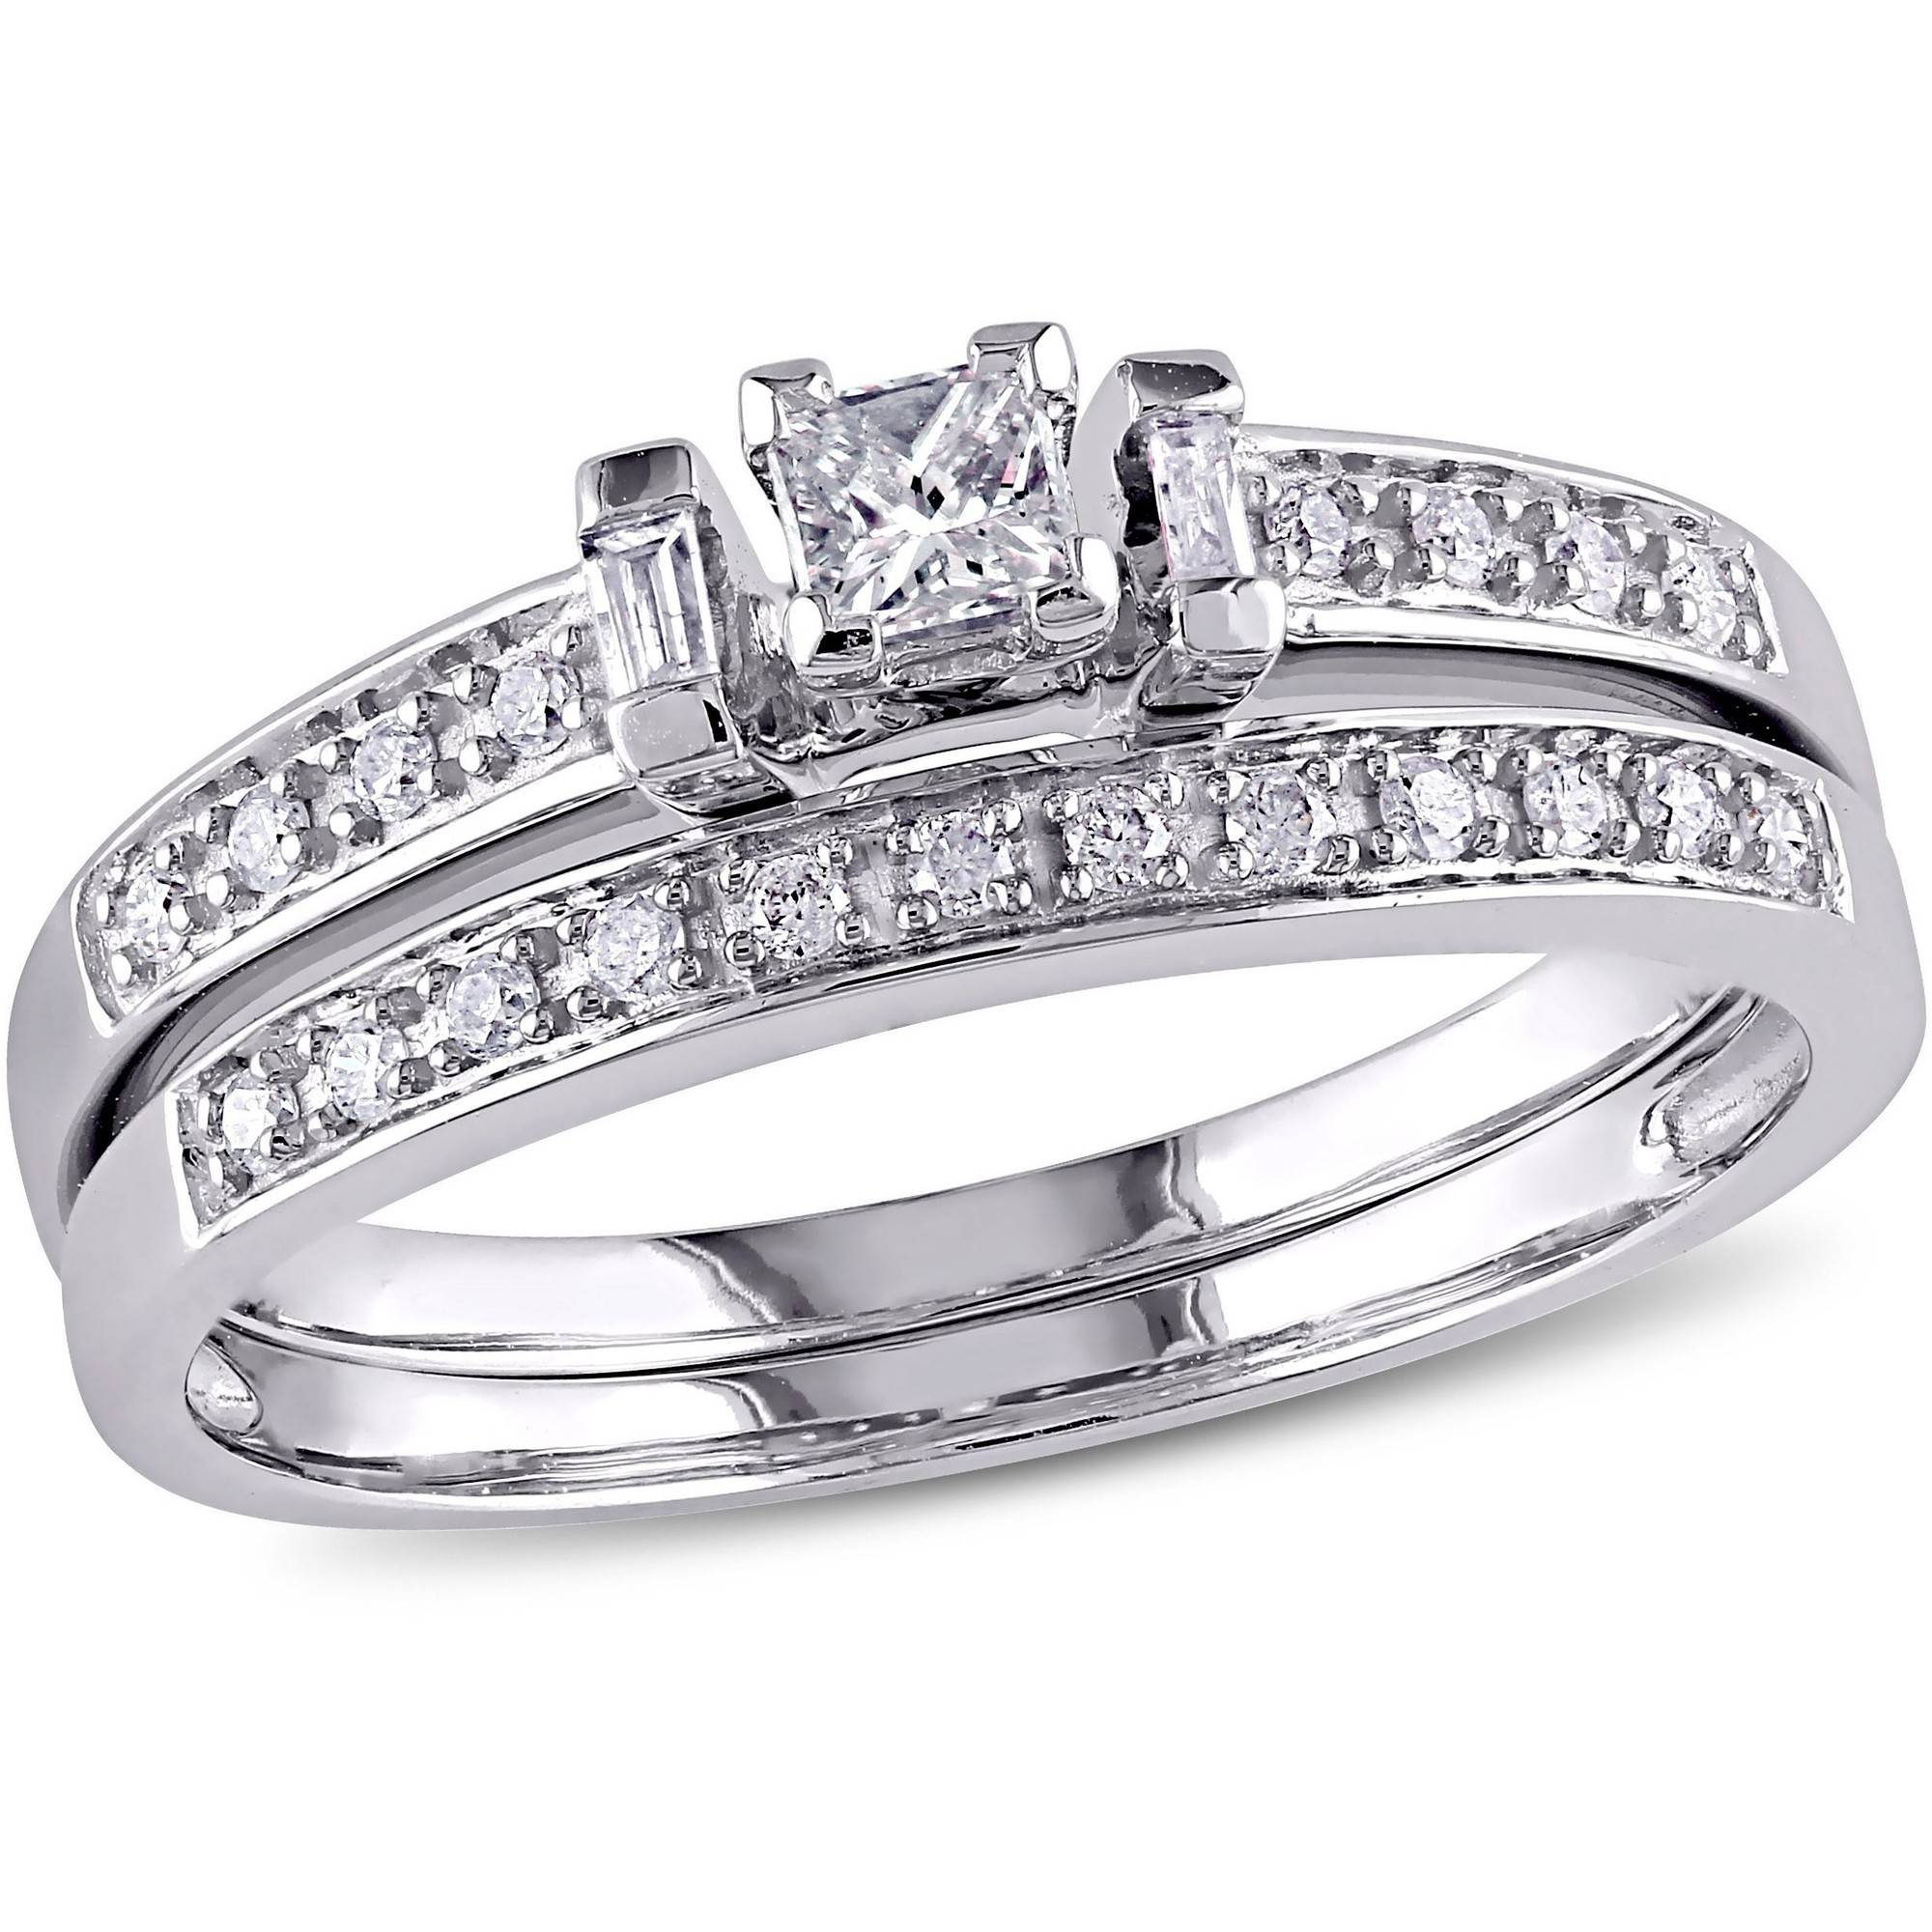 bands at diamond for sale rings j eternity jewelry z baguette id band anniversary